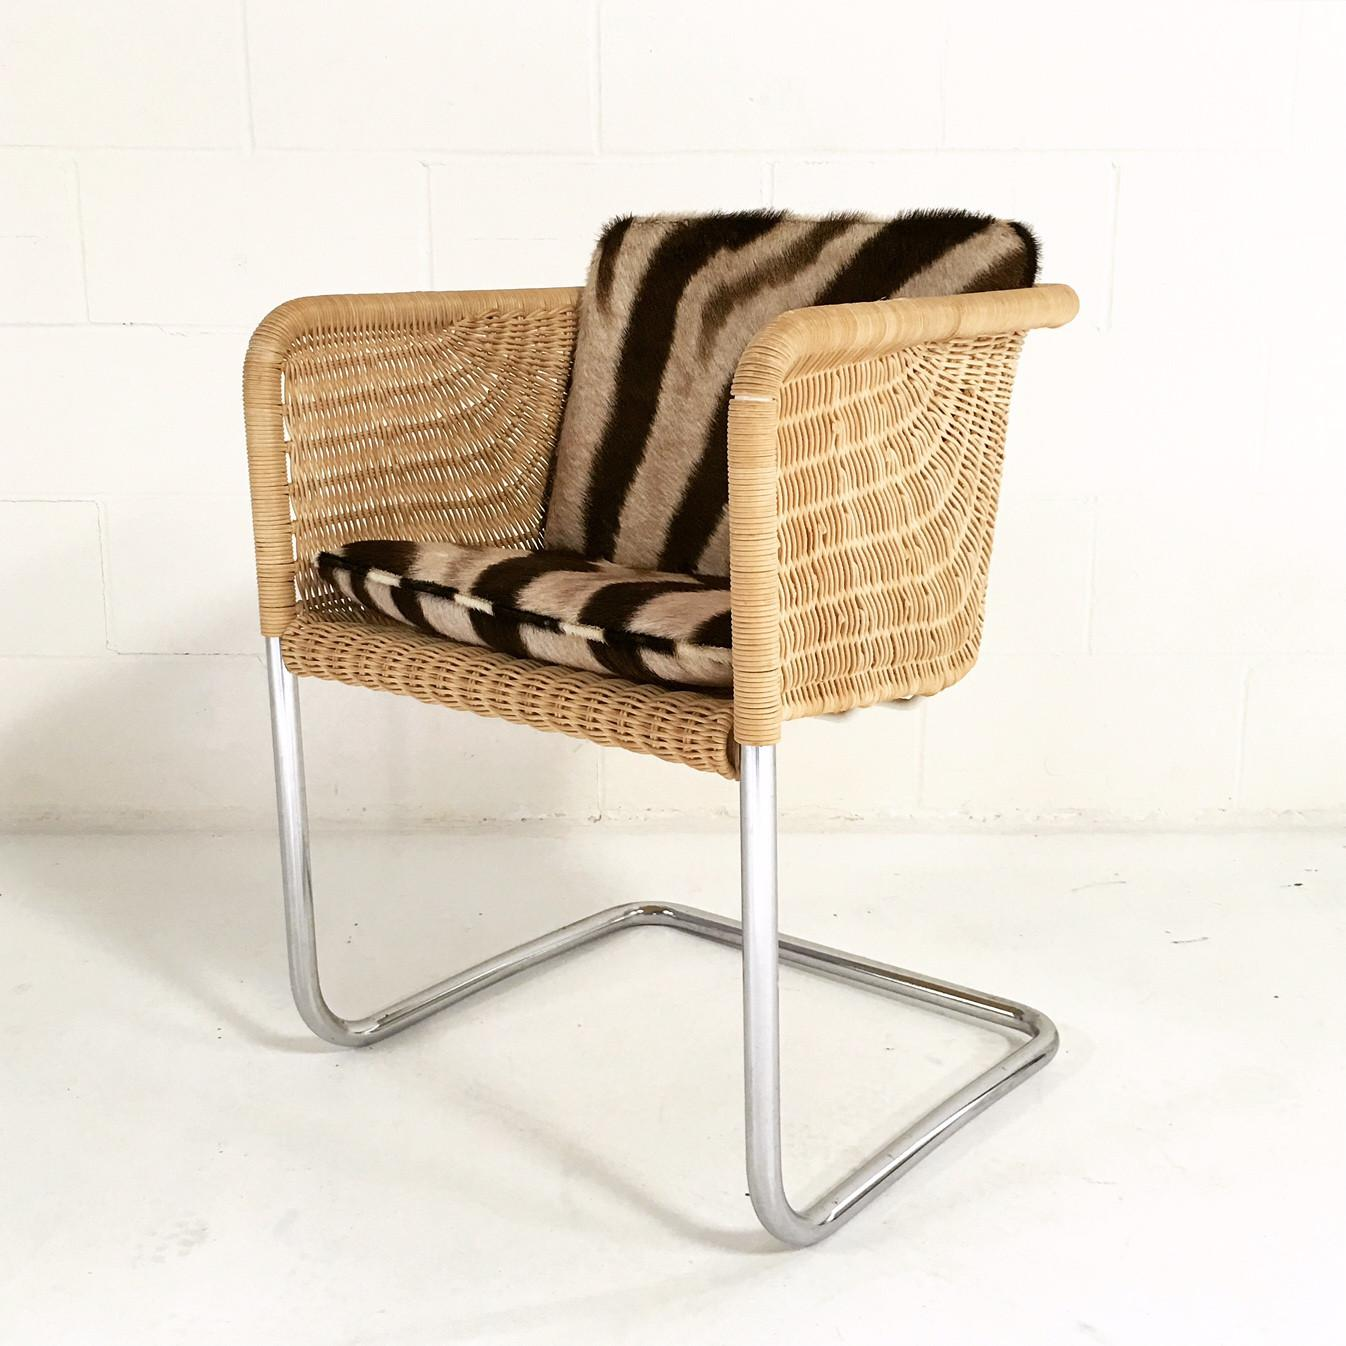 Forsyth One Of A Kind Harvey Probber Wicker And Chrome Chair With Zebra  Cushion   Image